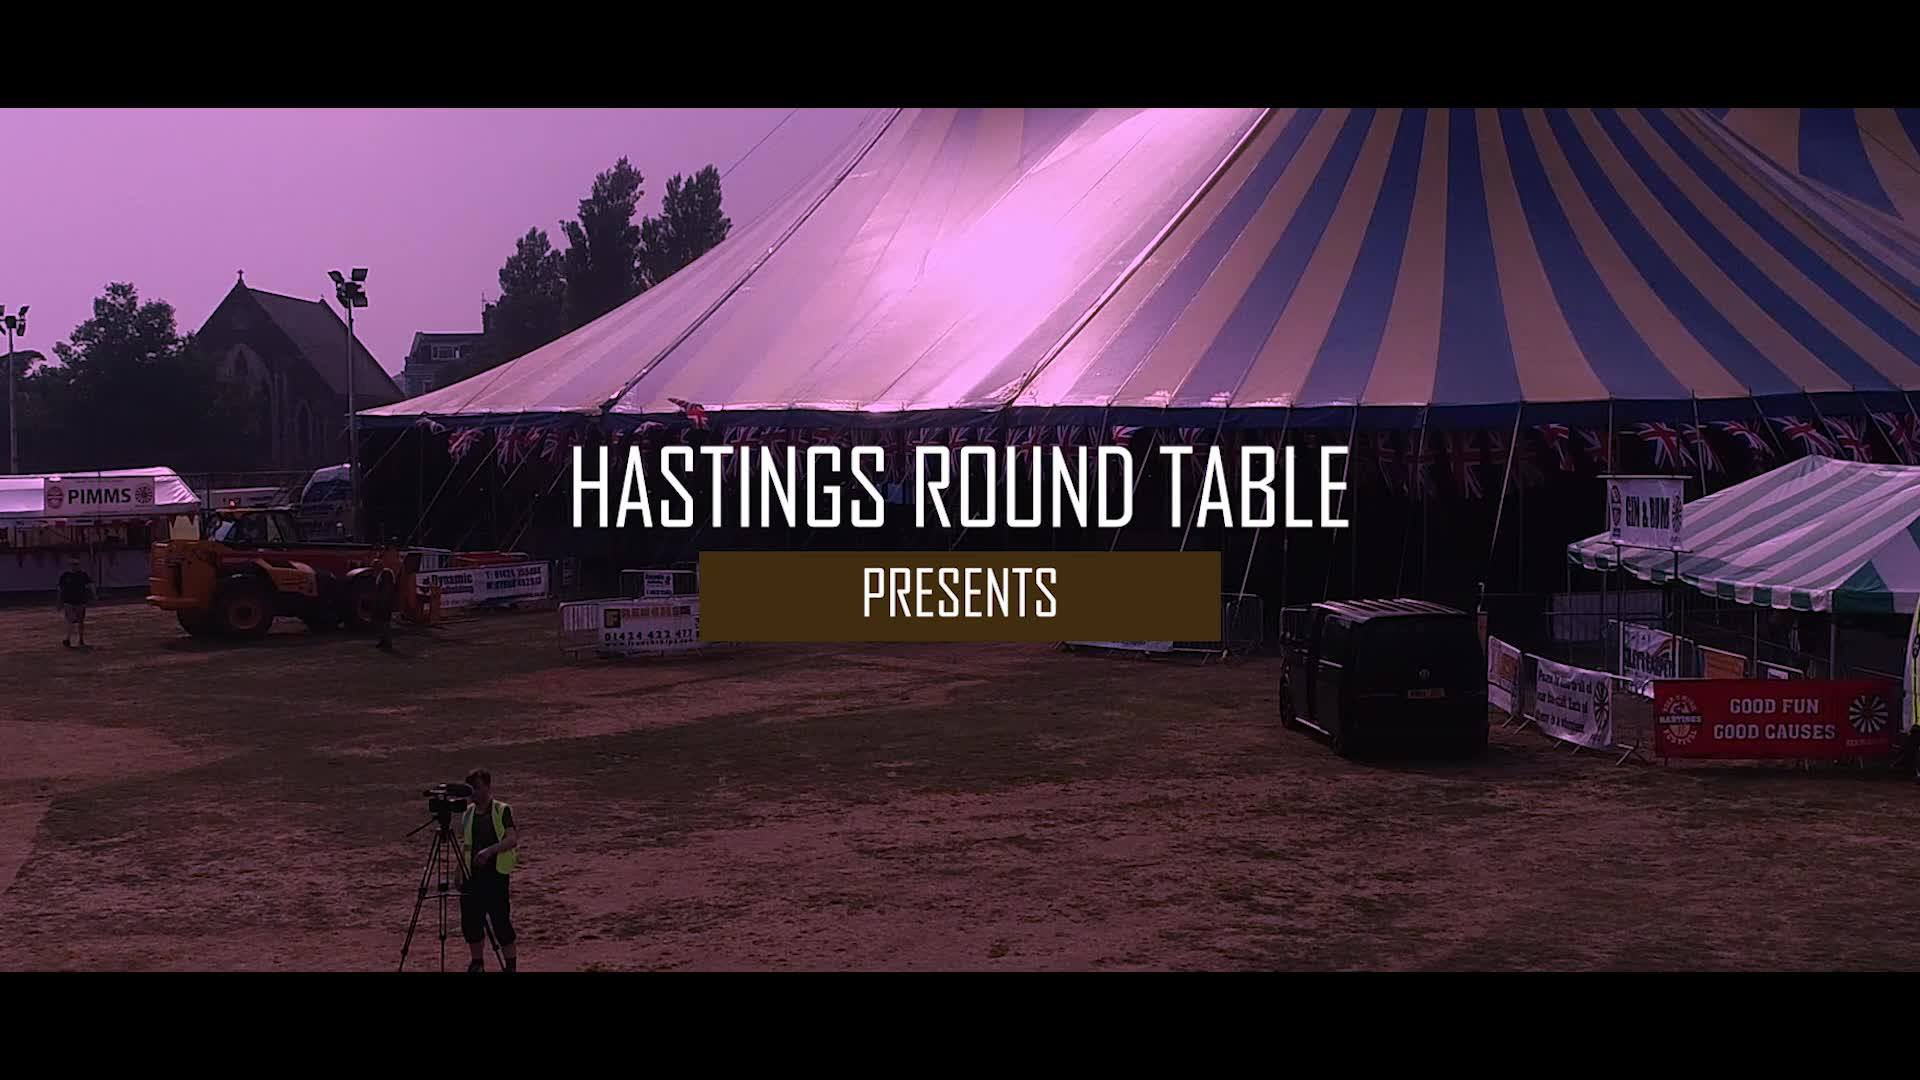 HBMF .... Tickets still available at www.hbmf.co.uk